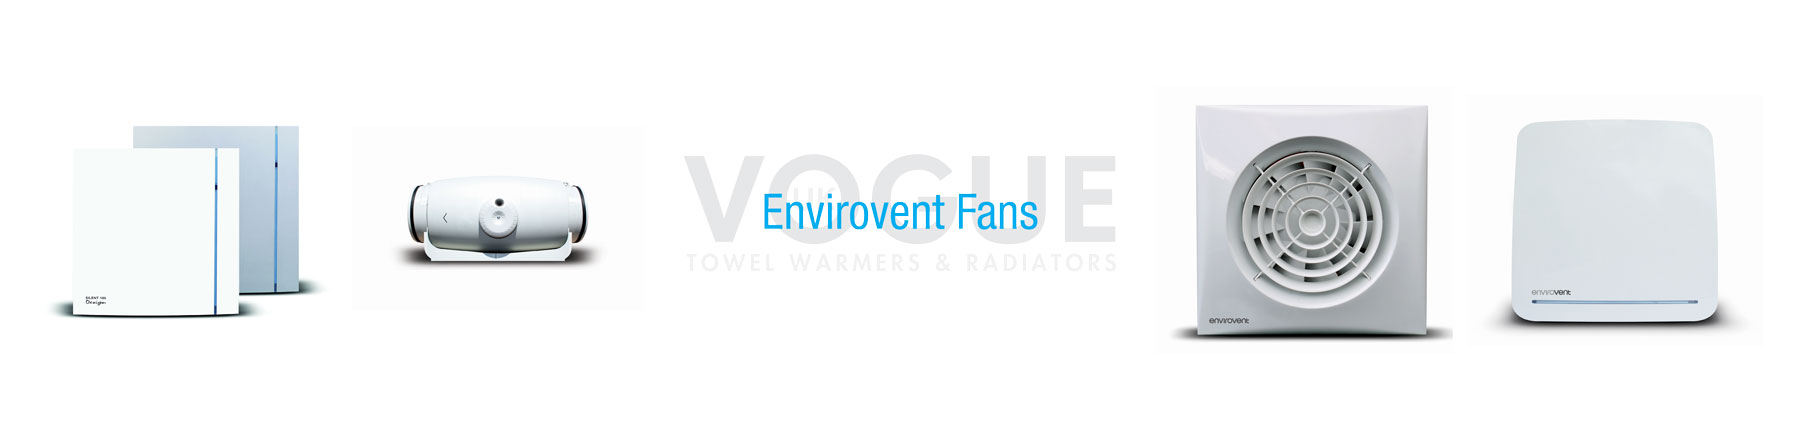 envirovent fans product header